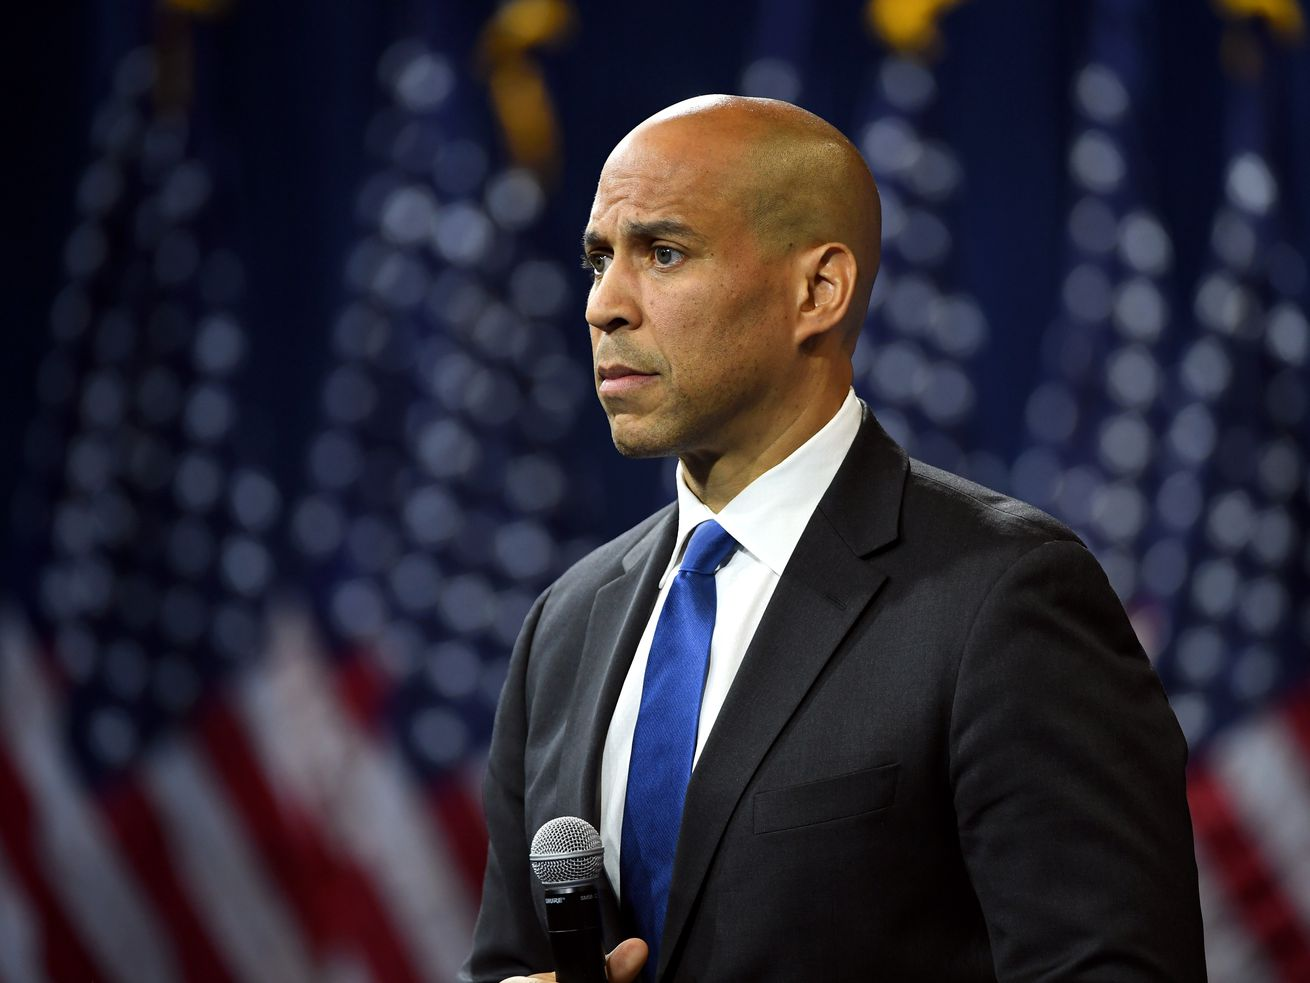 Senator Cory Booker holds a microphone and stands onstage in front of several American flags.